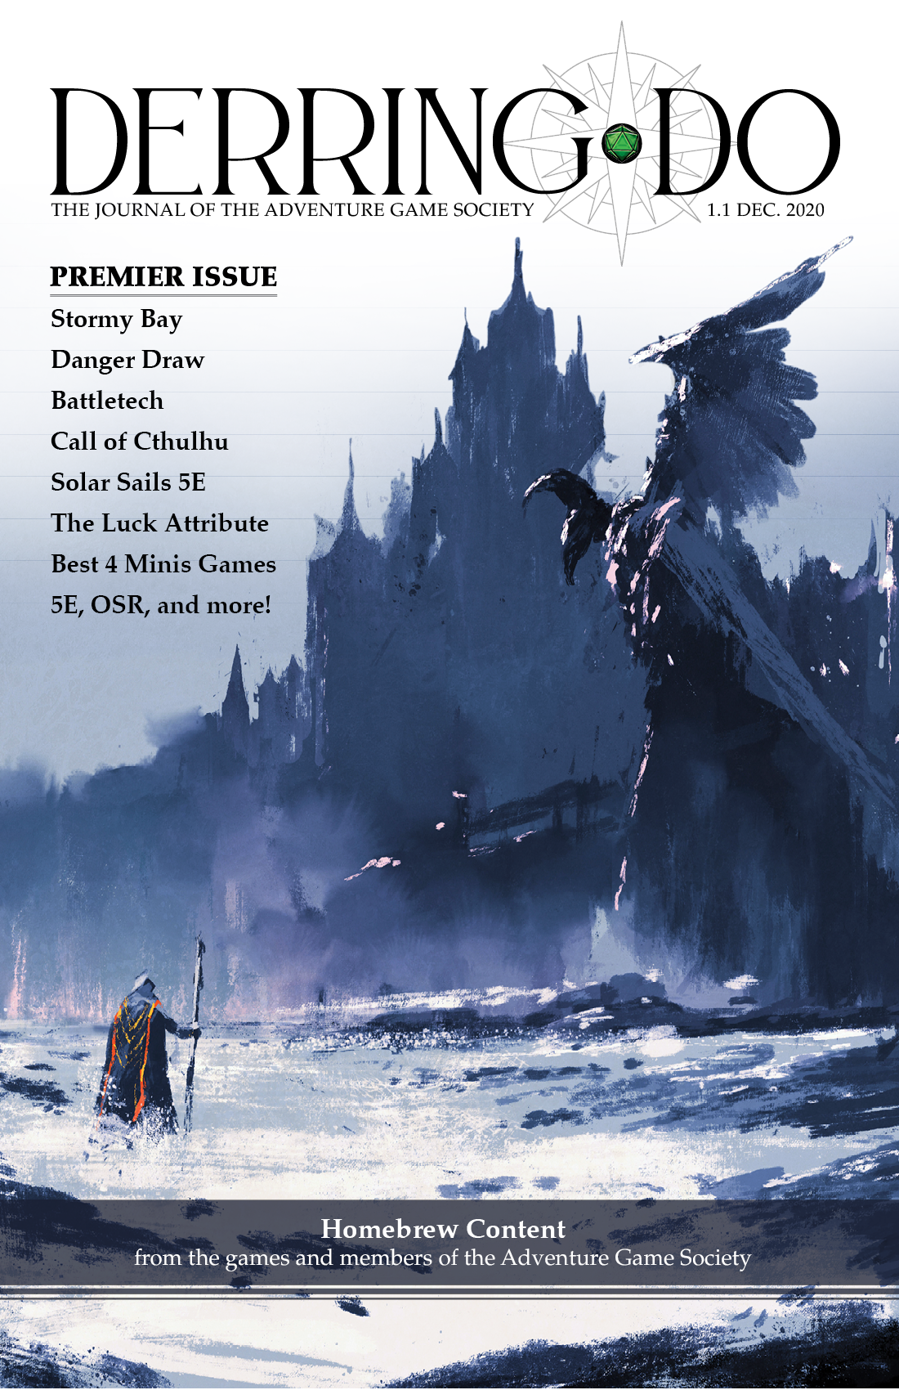 The cover of an issue of DerringDo magazine.